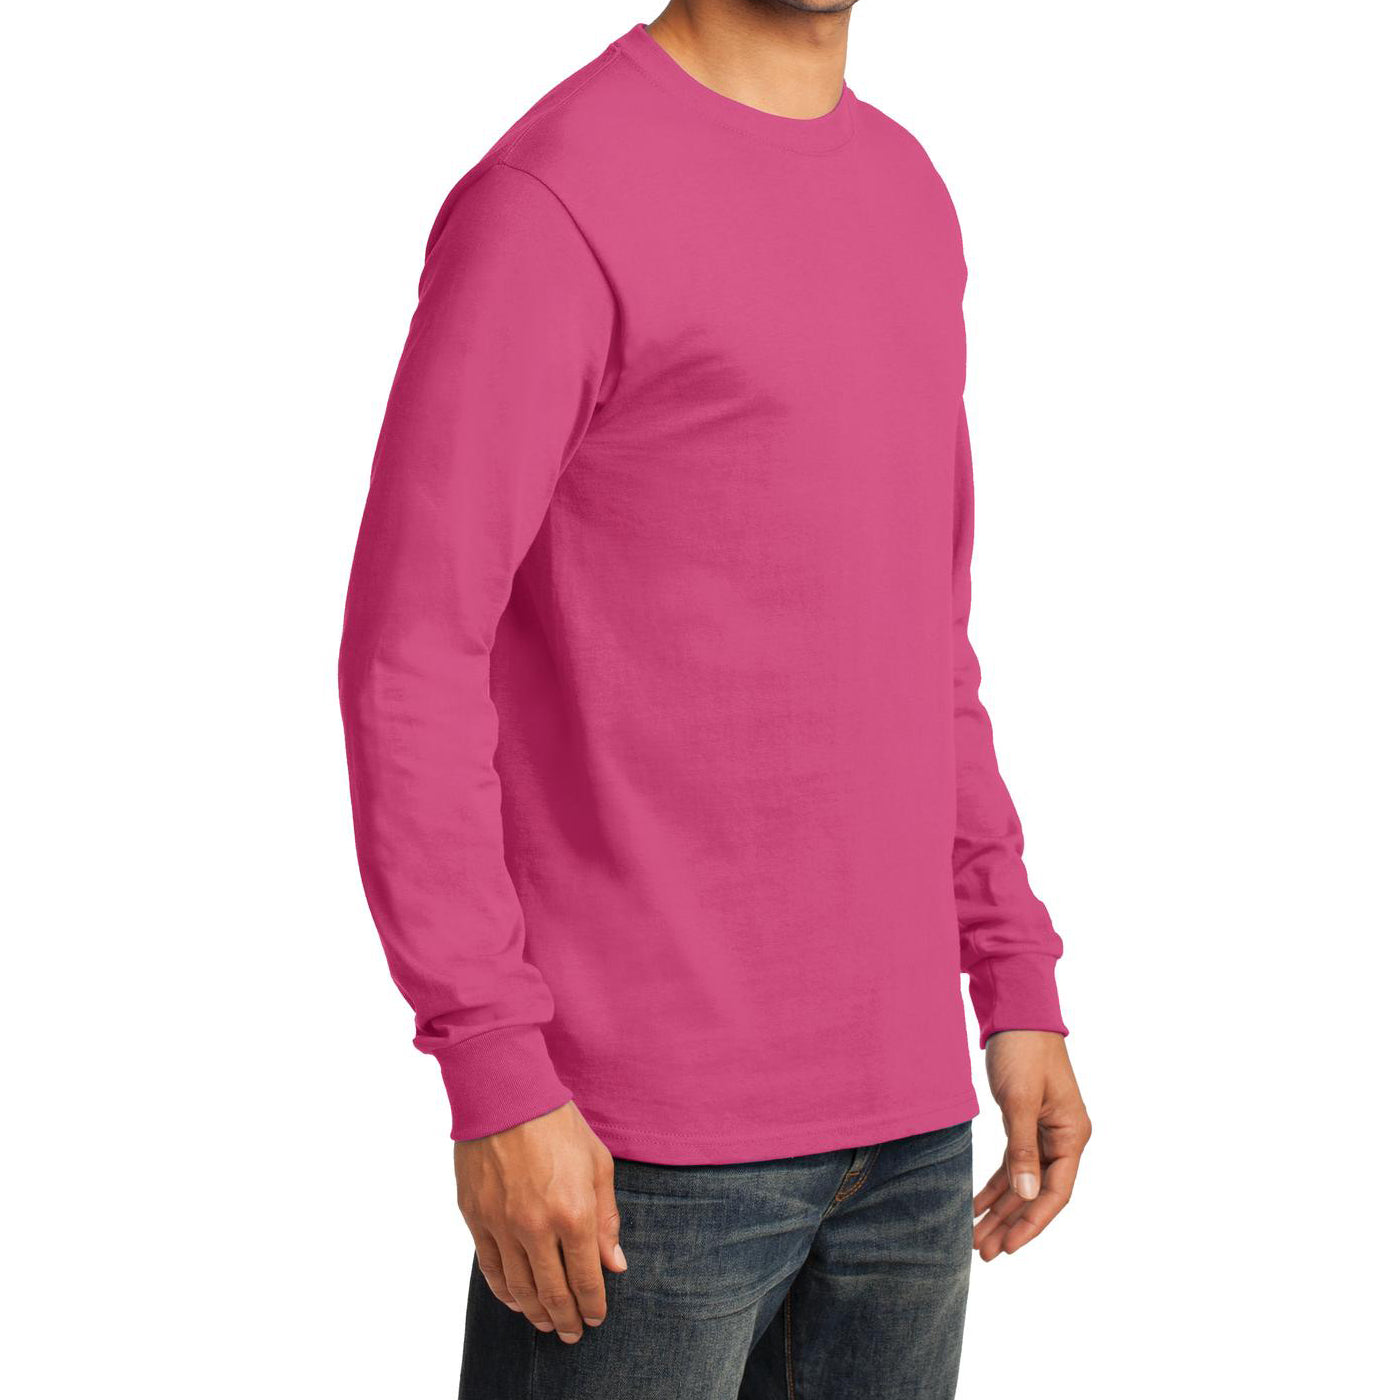 Men's Long Sleeve Essential Tee - Sangria - Side